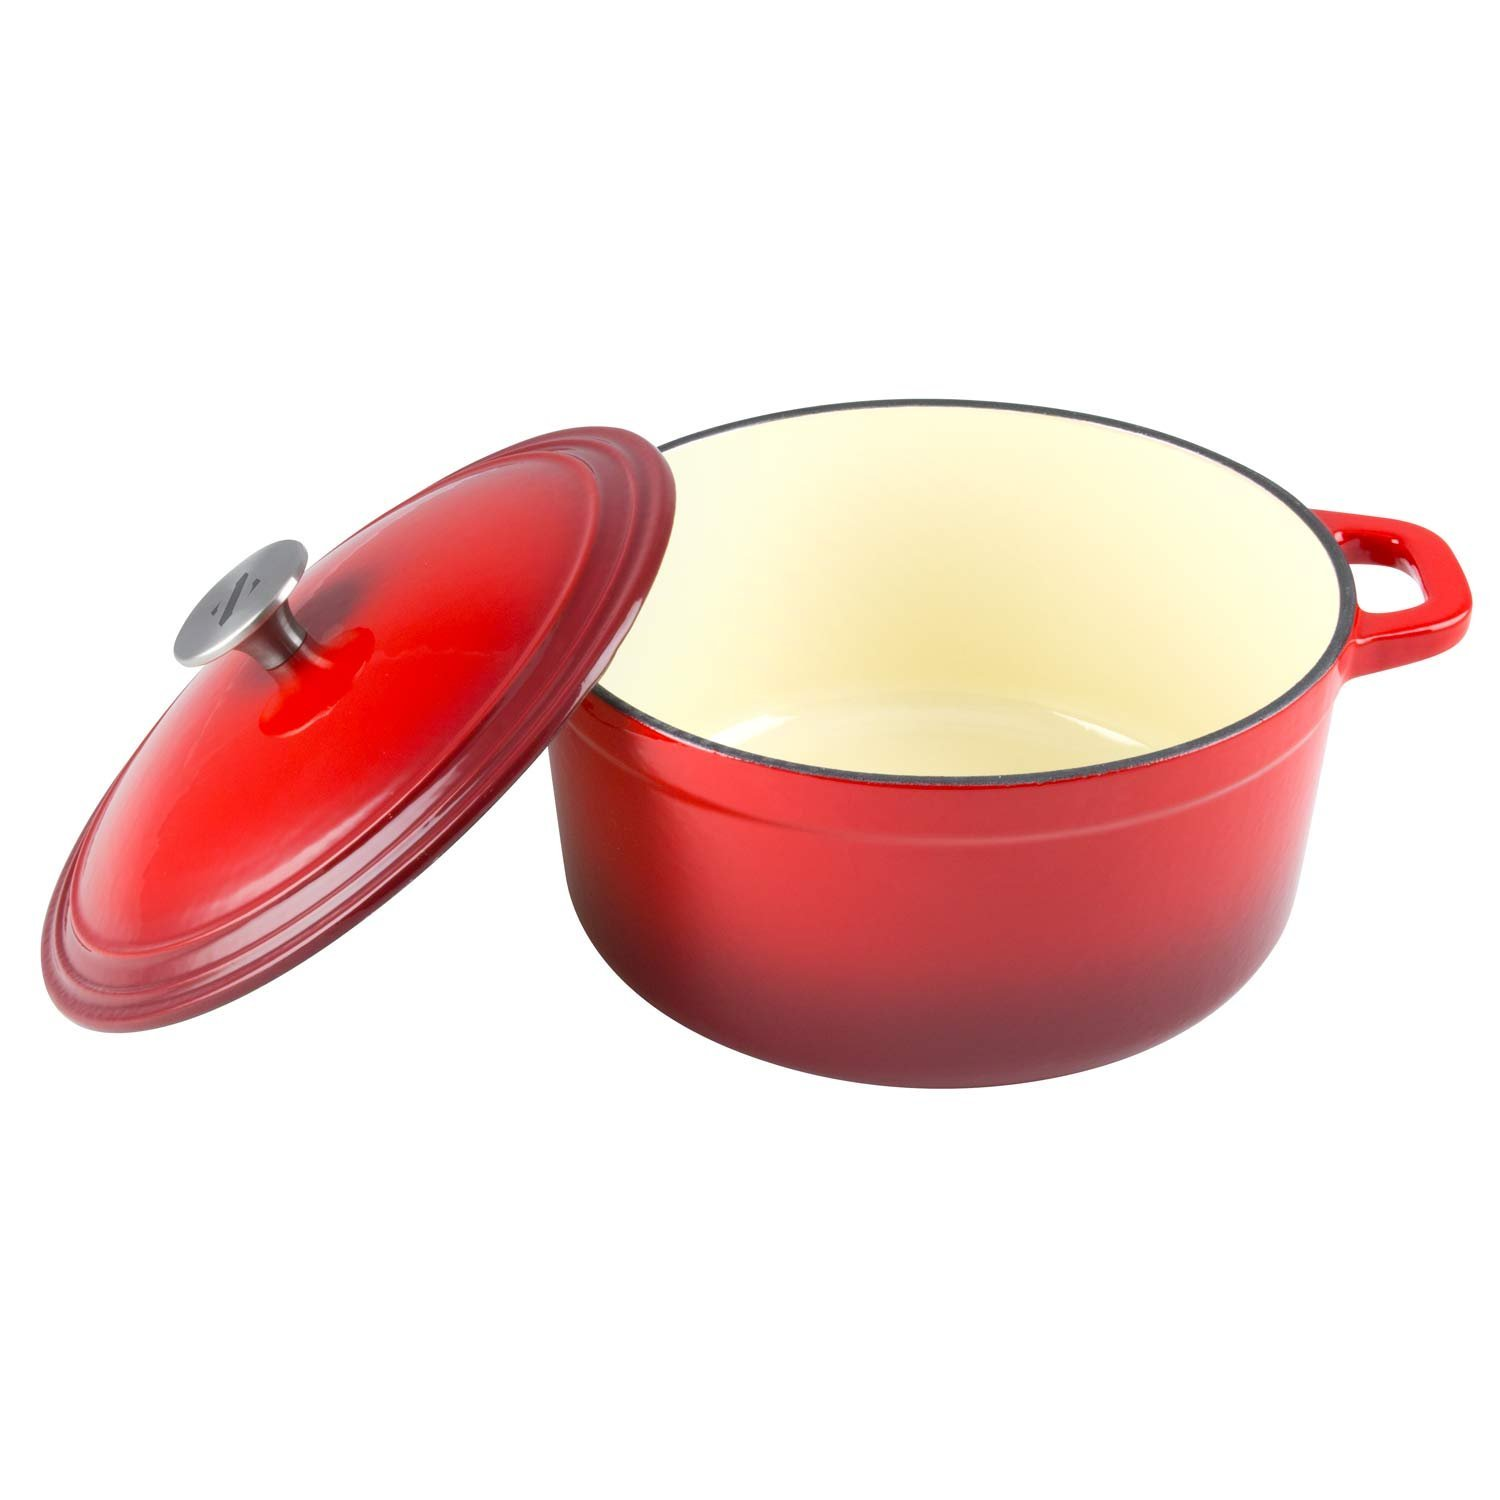 Zelancio Cookware 6 Quart Enameled Cast Iron Dutch Oven Cooking Dish with Self-Basting Lid, Red